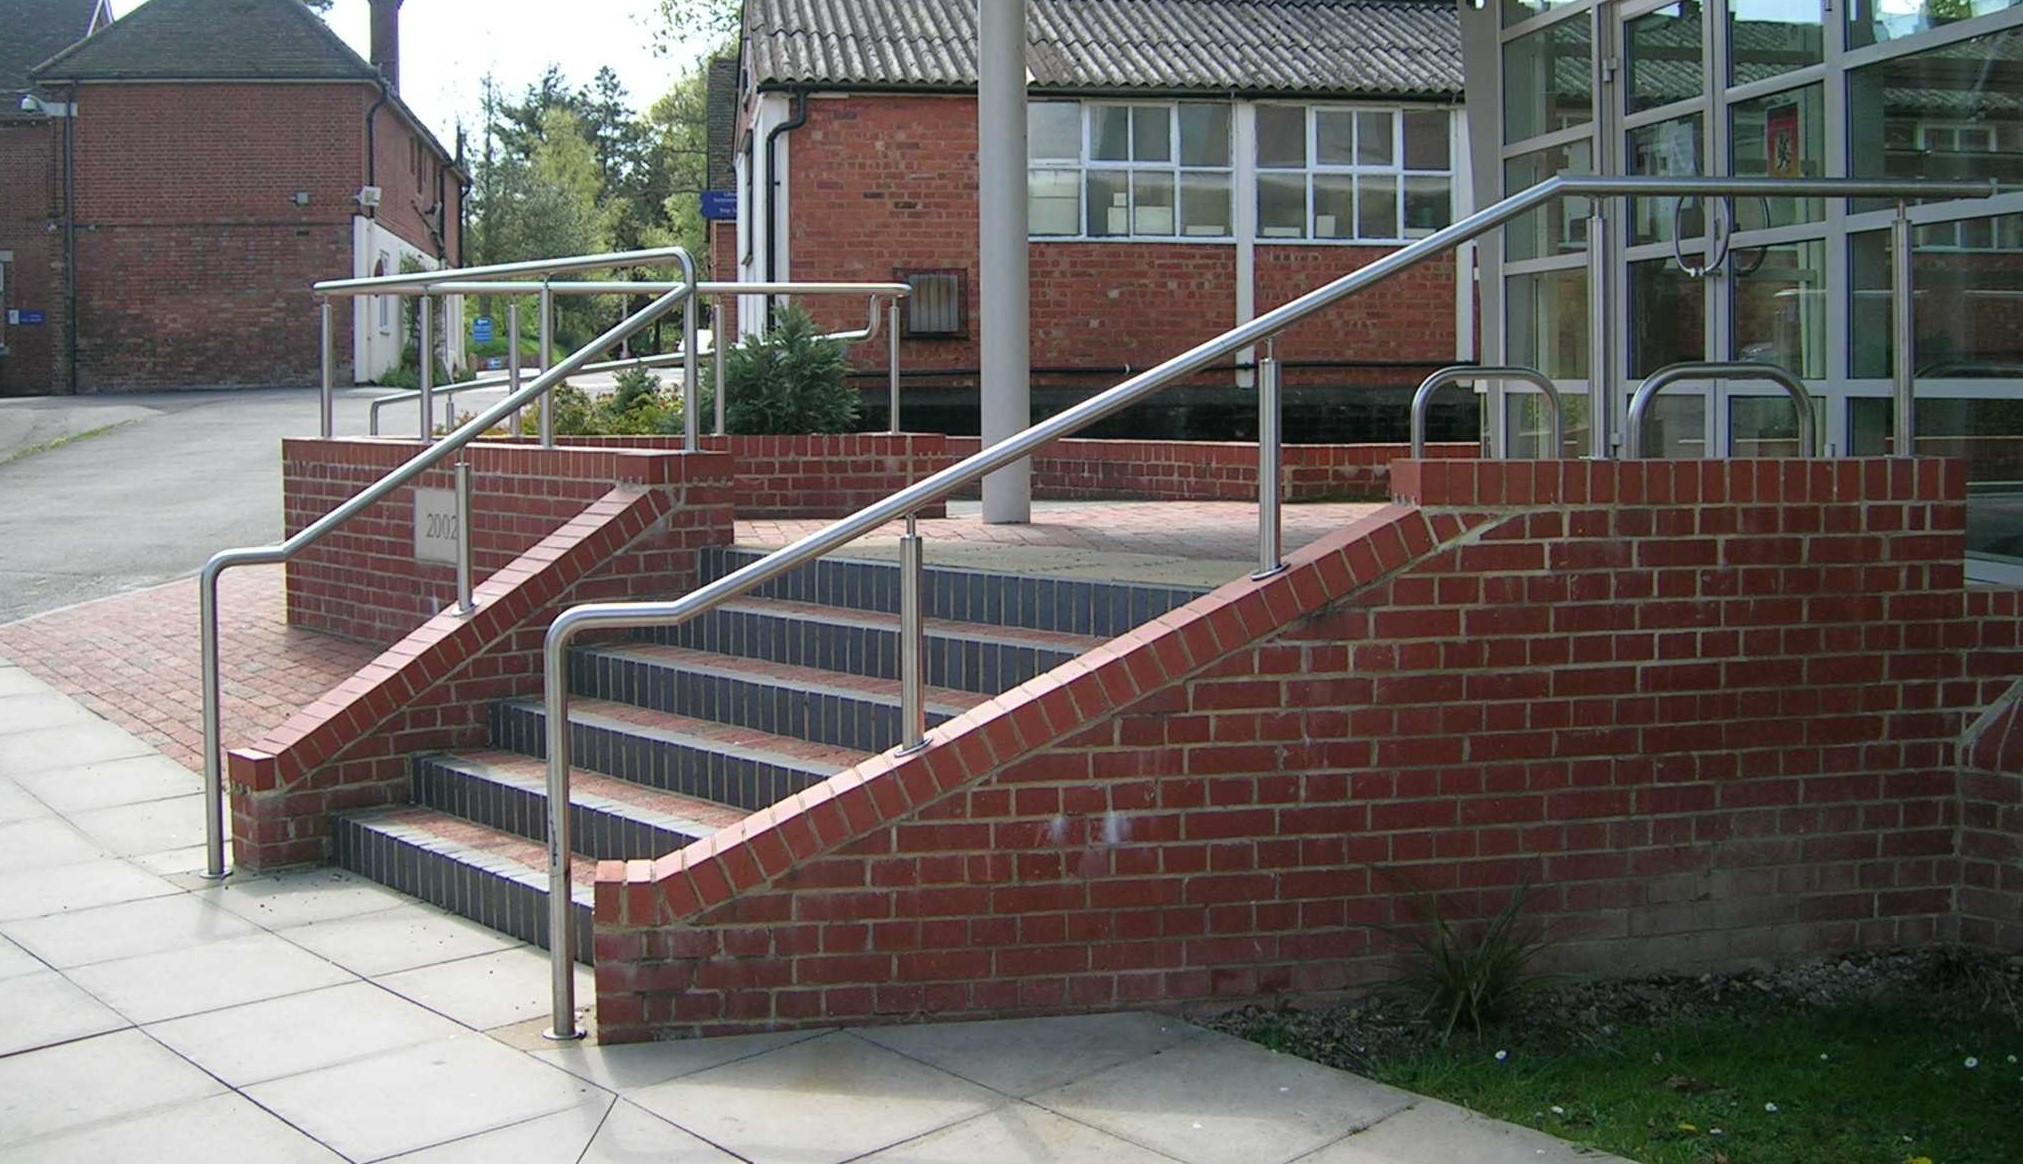 The benefits of Stainless Steel Handrails